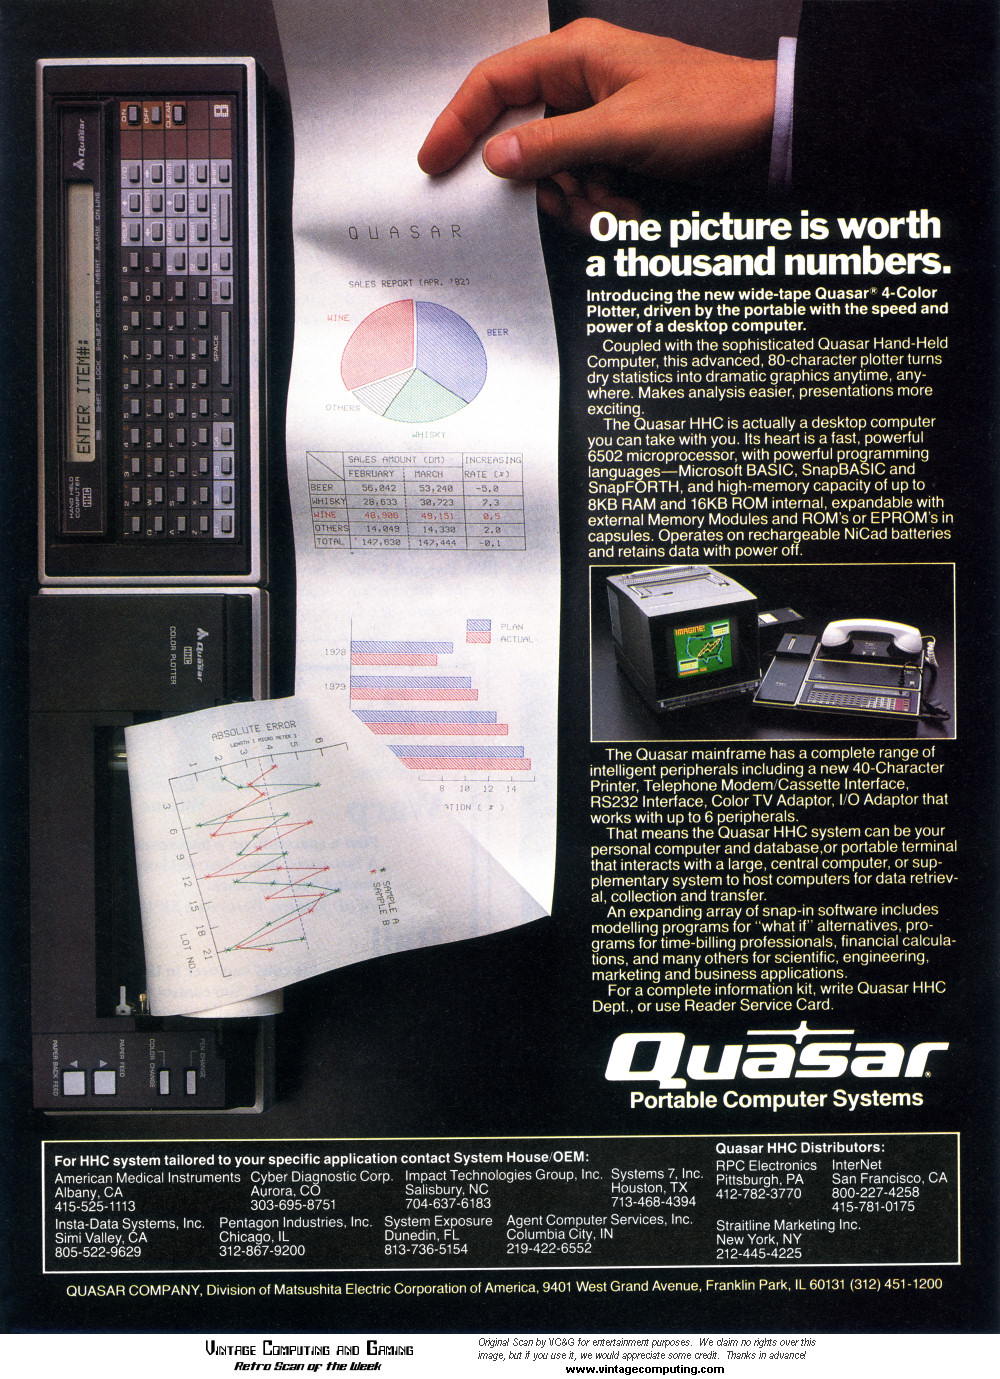 quasar computers and different market structures